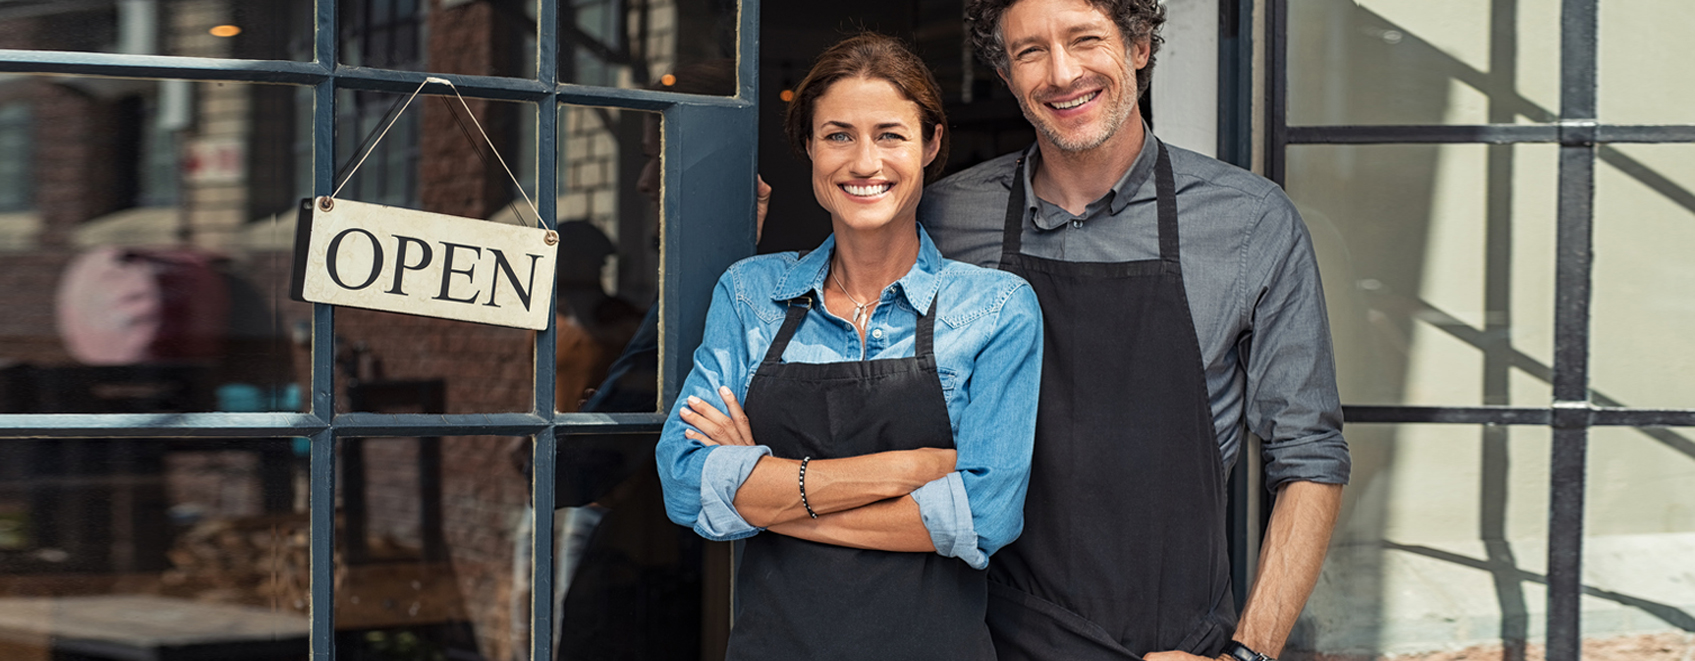 two business owners smiling next to Open sign